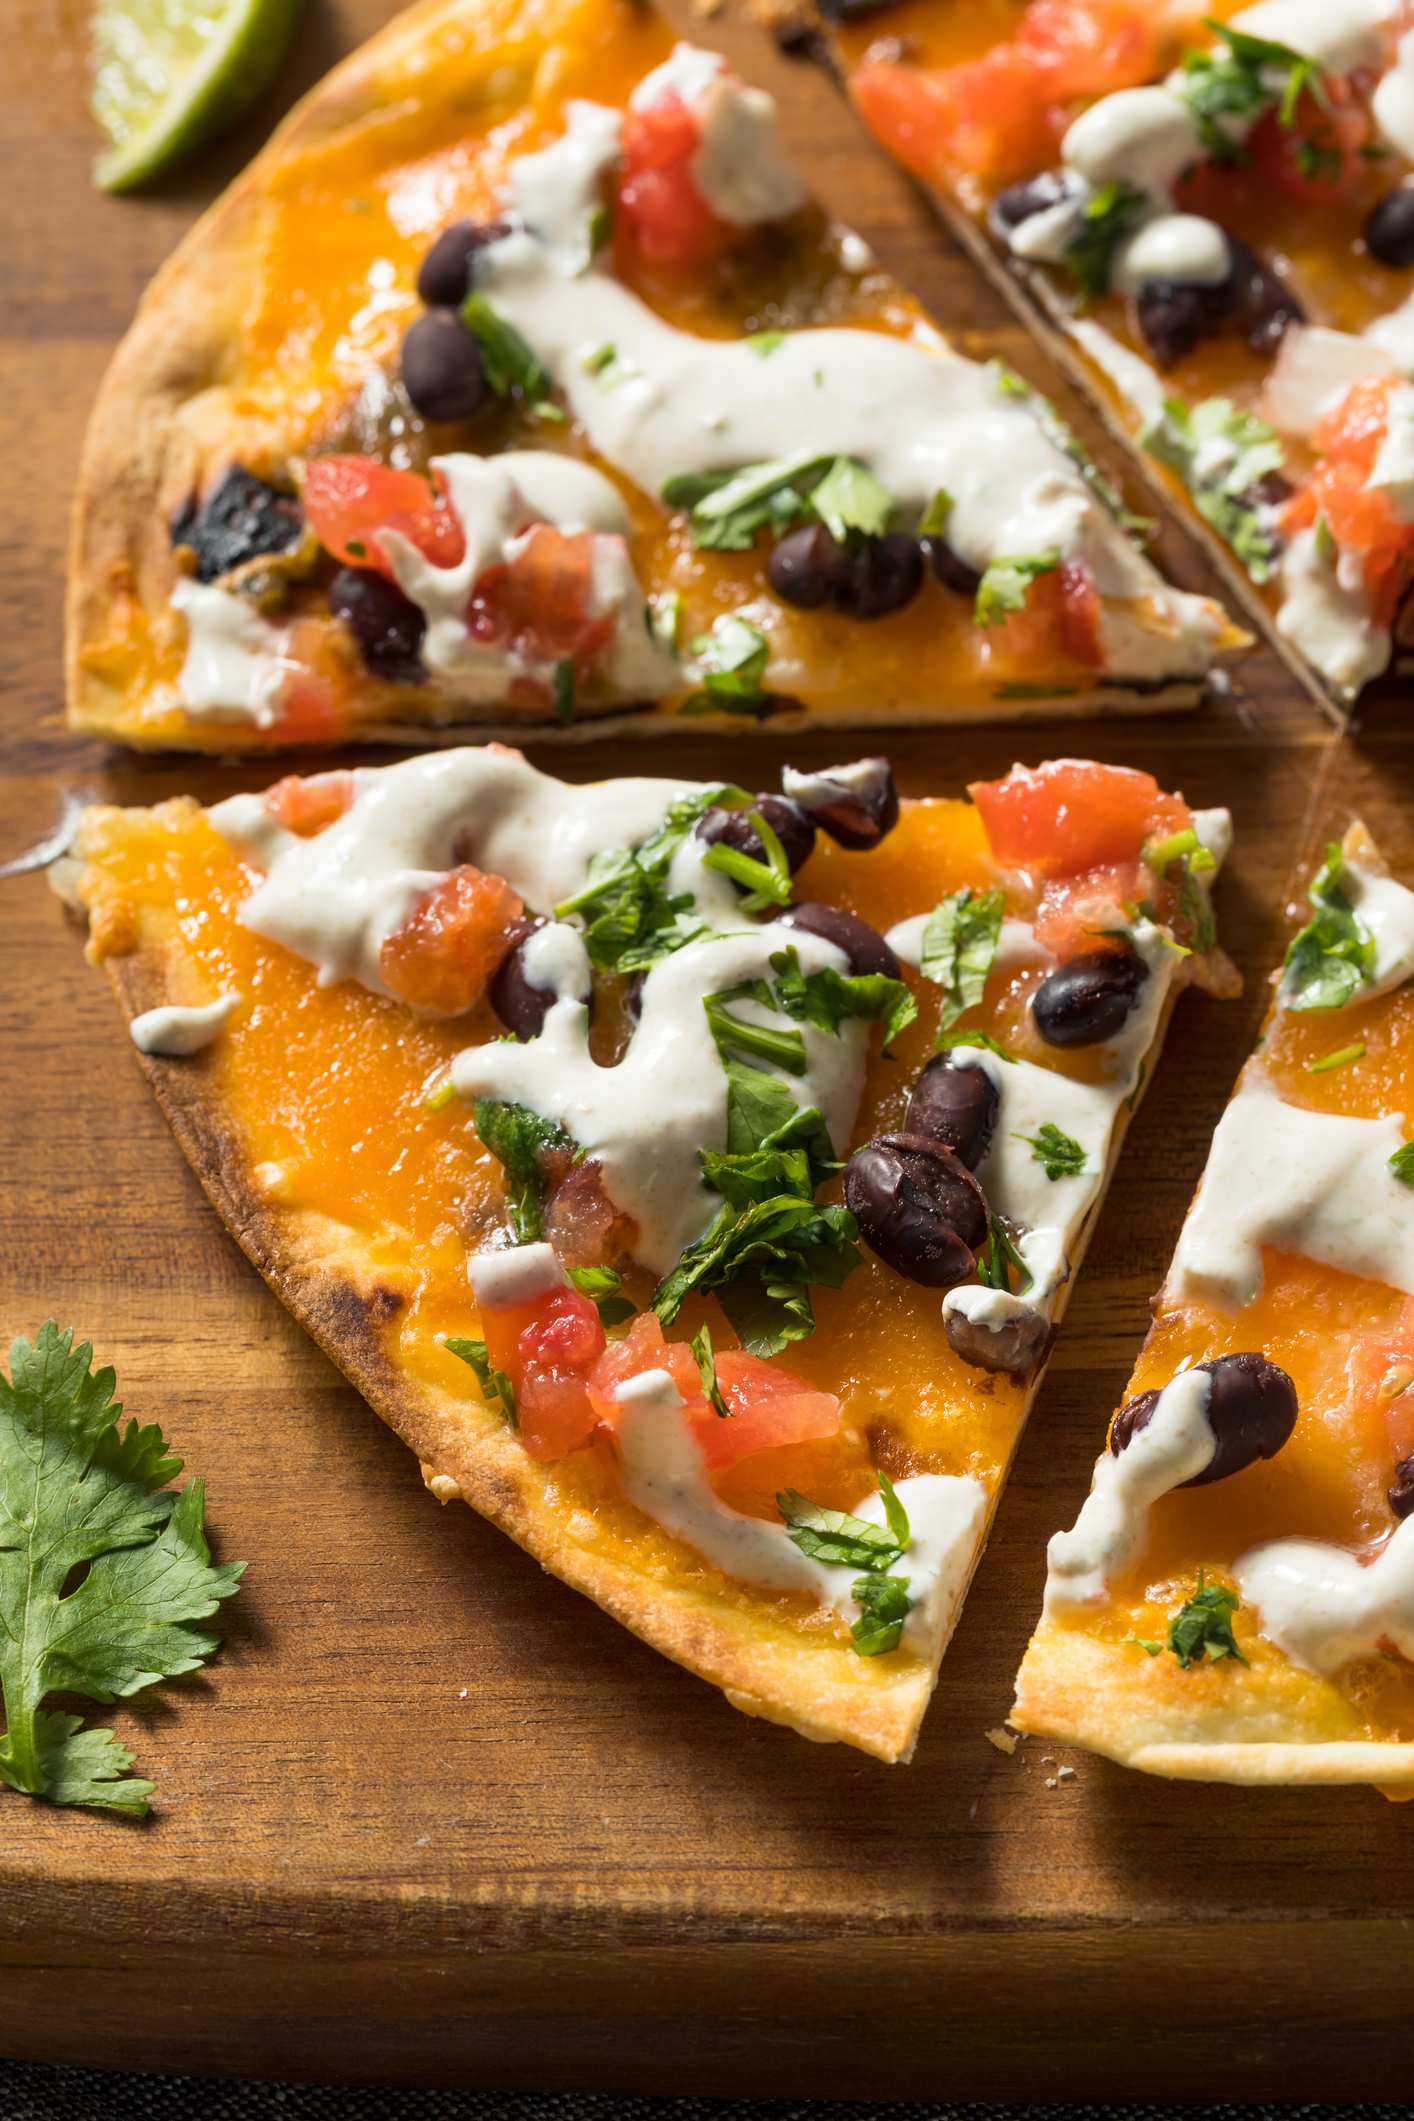 I've gathered up some easy at home lunch ideas for kids, some with as few as three ingredients, to help you get through this spring and summer. Your kids will love this pizza!